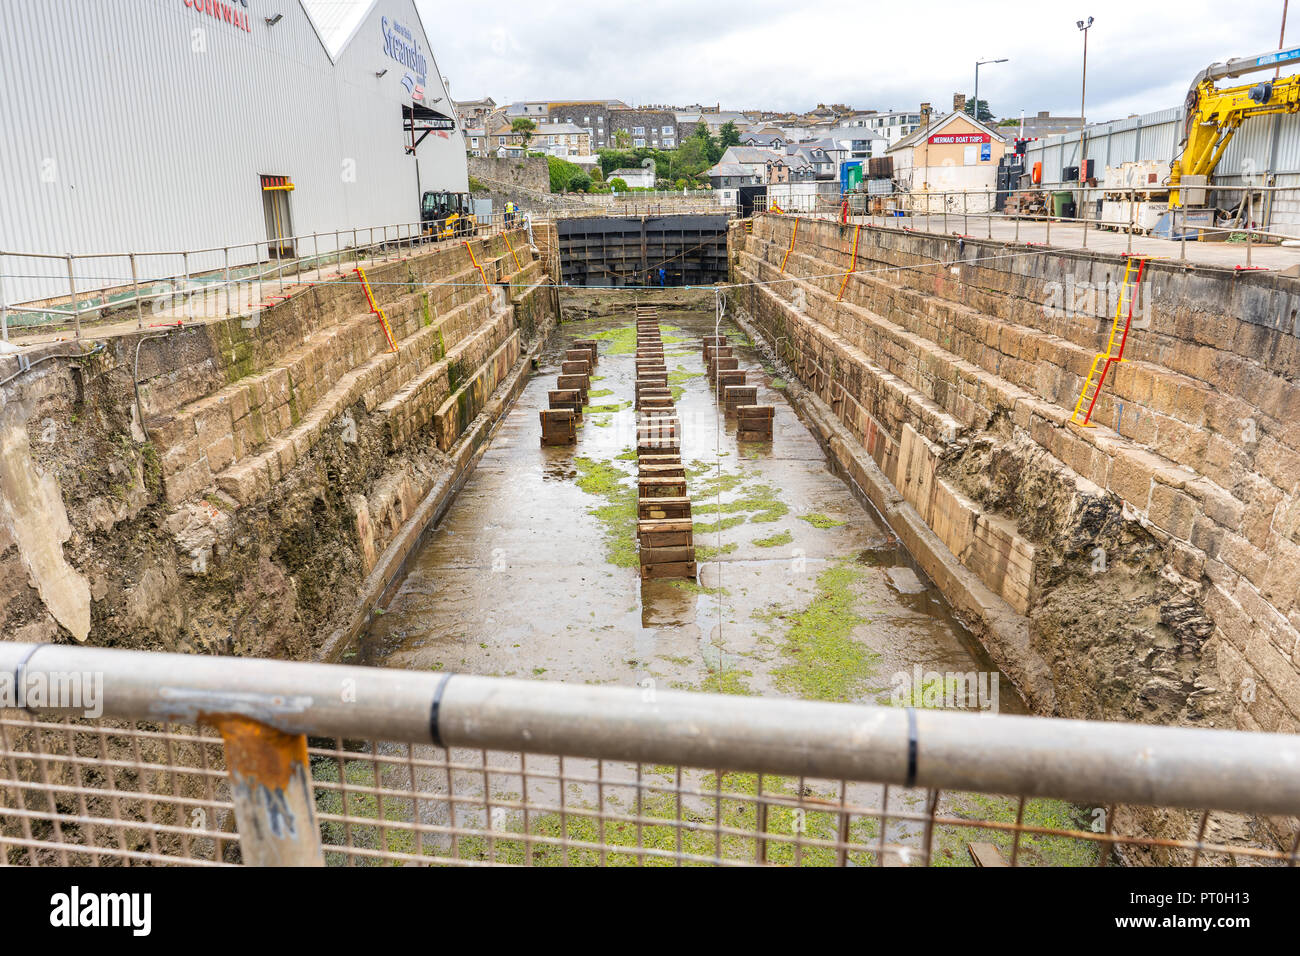 Penzance Dry Dock, St Ives, Cornwall - England - Stock Image